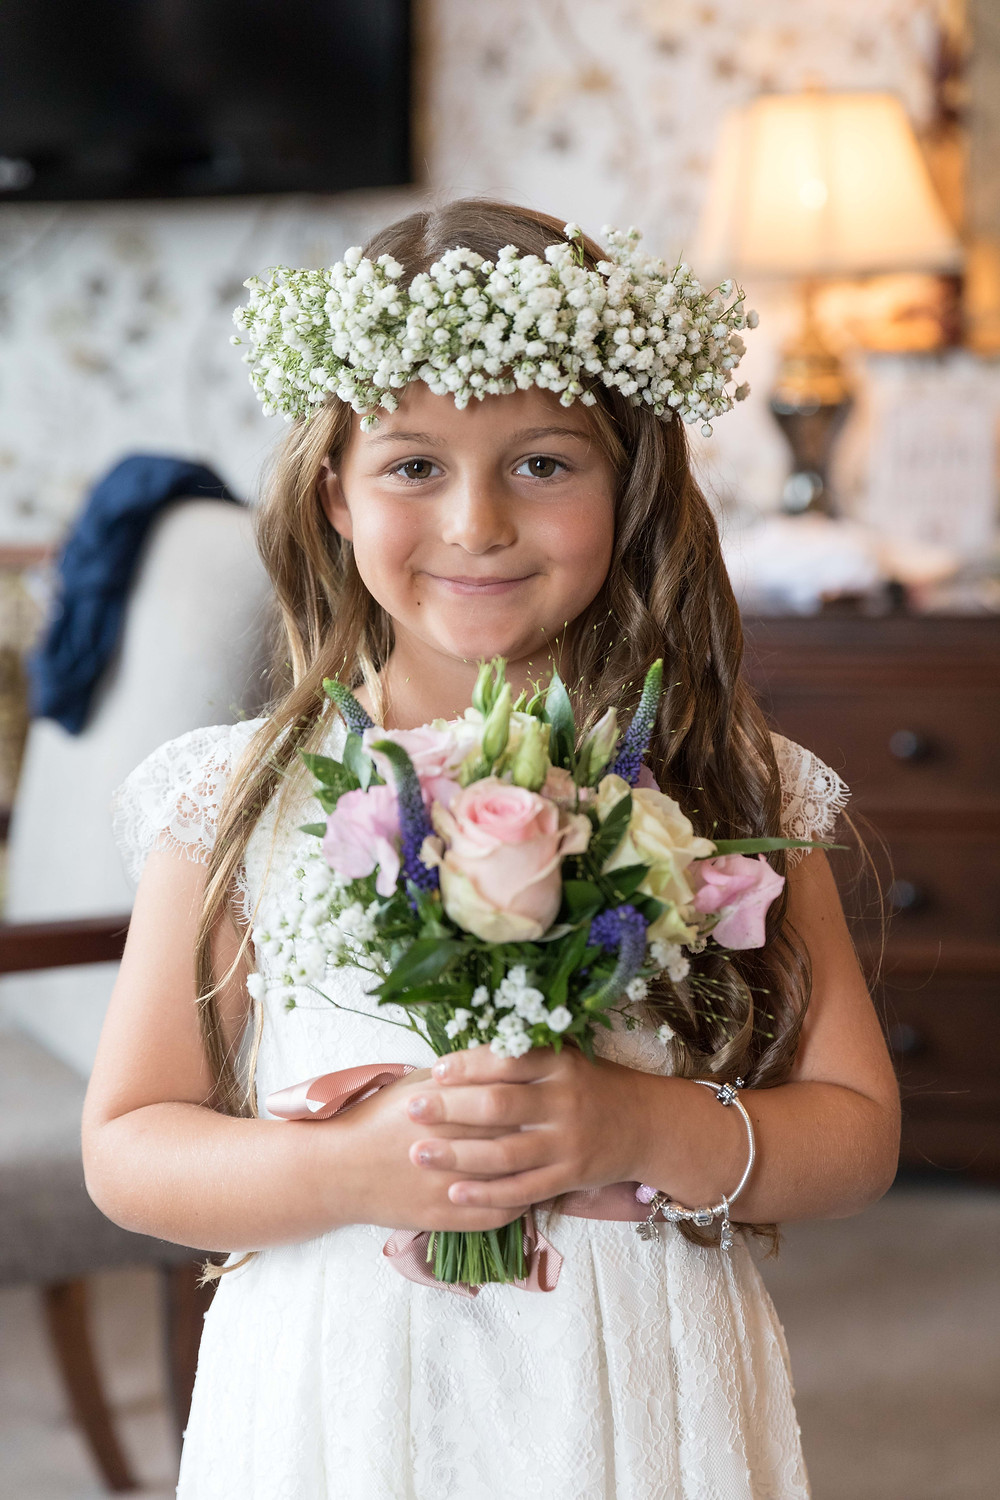 The flower girl capture by Whitby wedding photographer